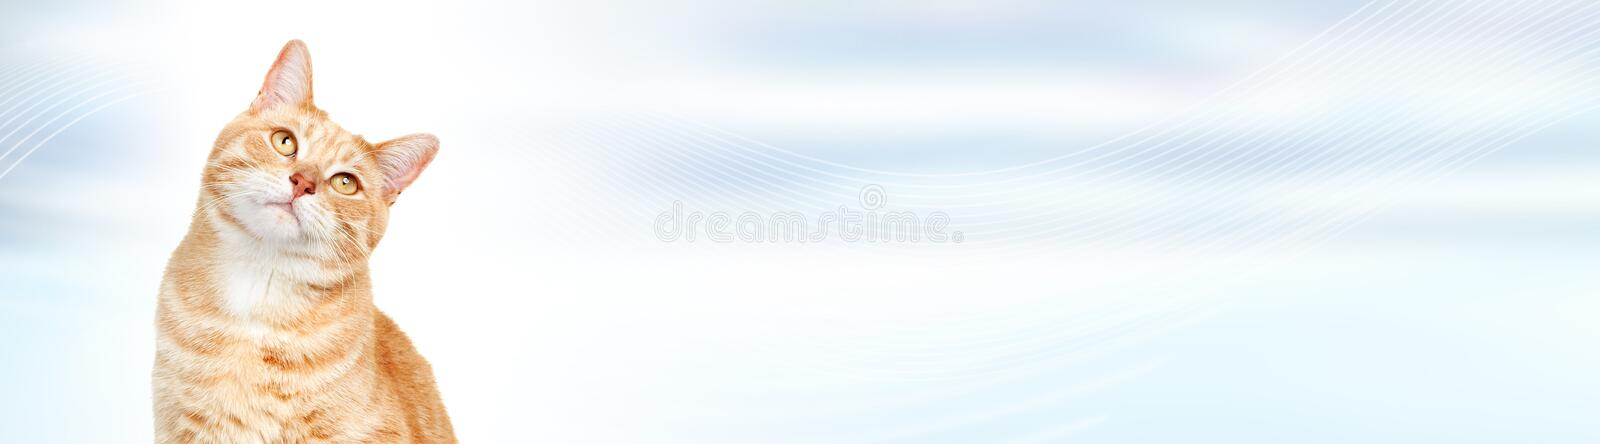 Cat. Domestic ginger pet cat over abstract blue background stock photography